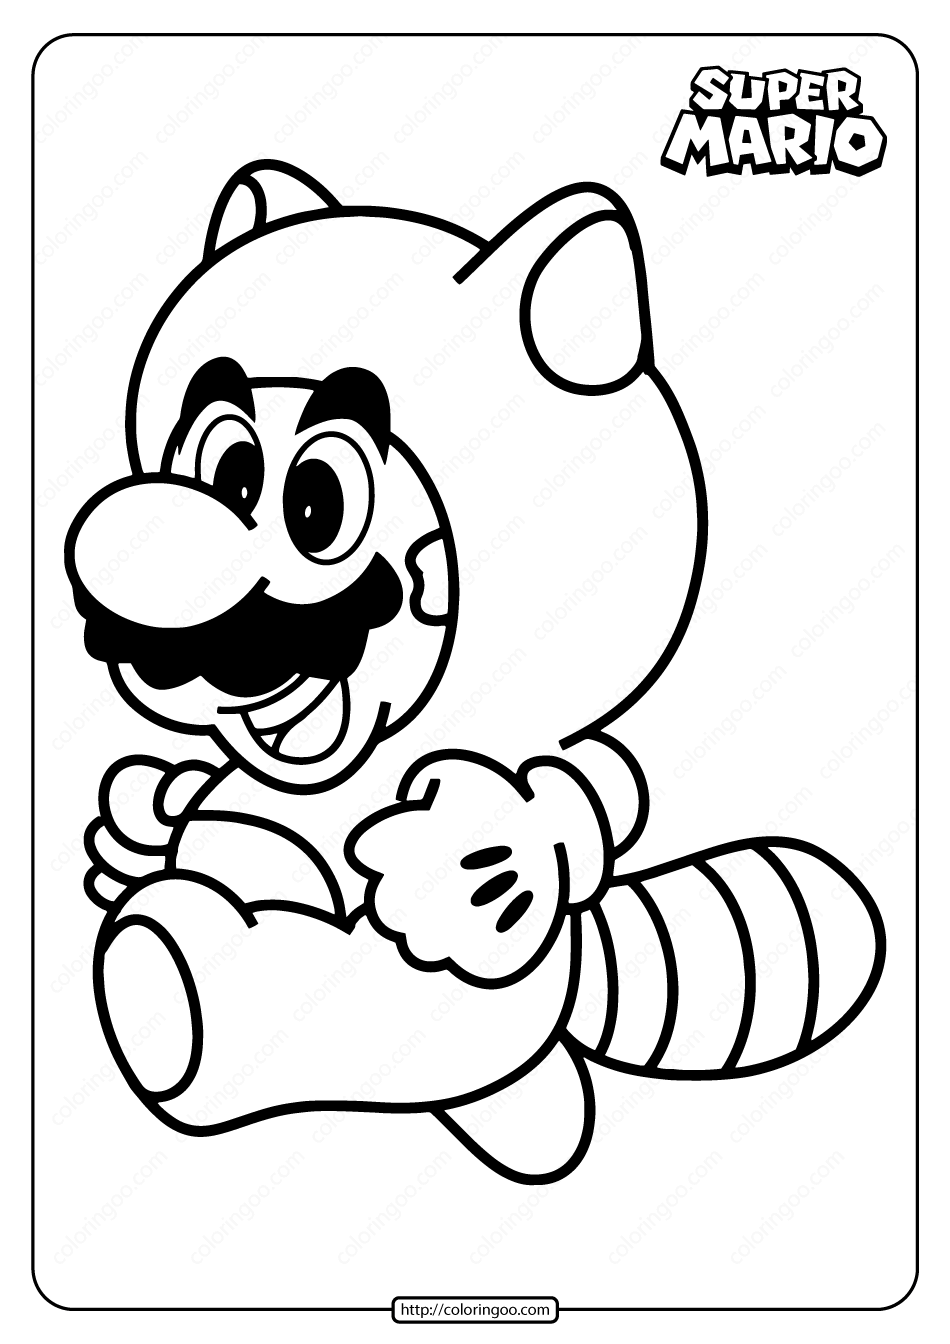 coloring sheet mario coloring pages coloring pages mario coloring pages free and printable coloring pages sheet coloring mario